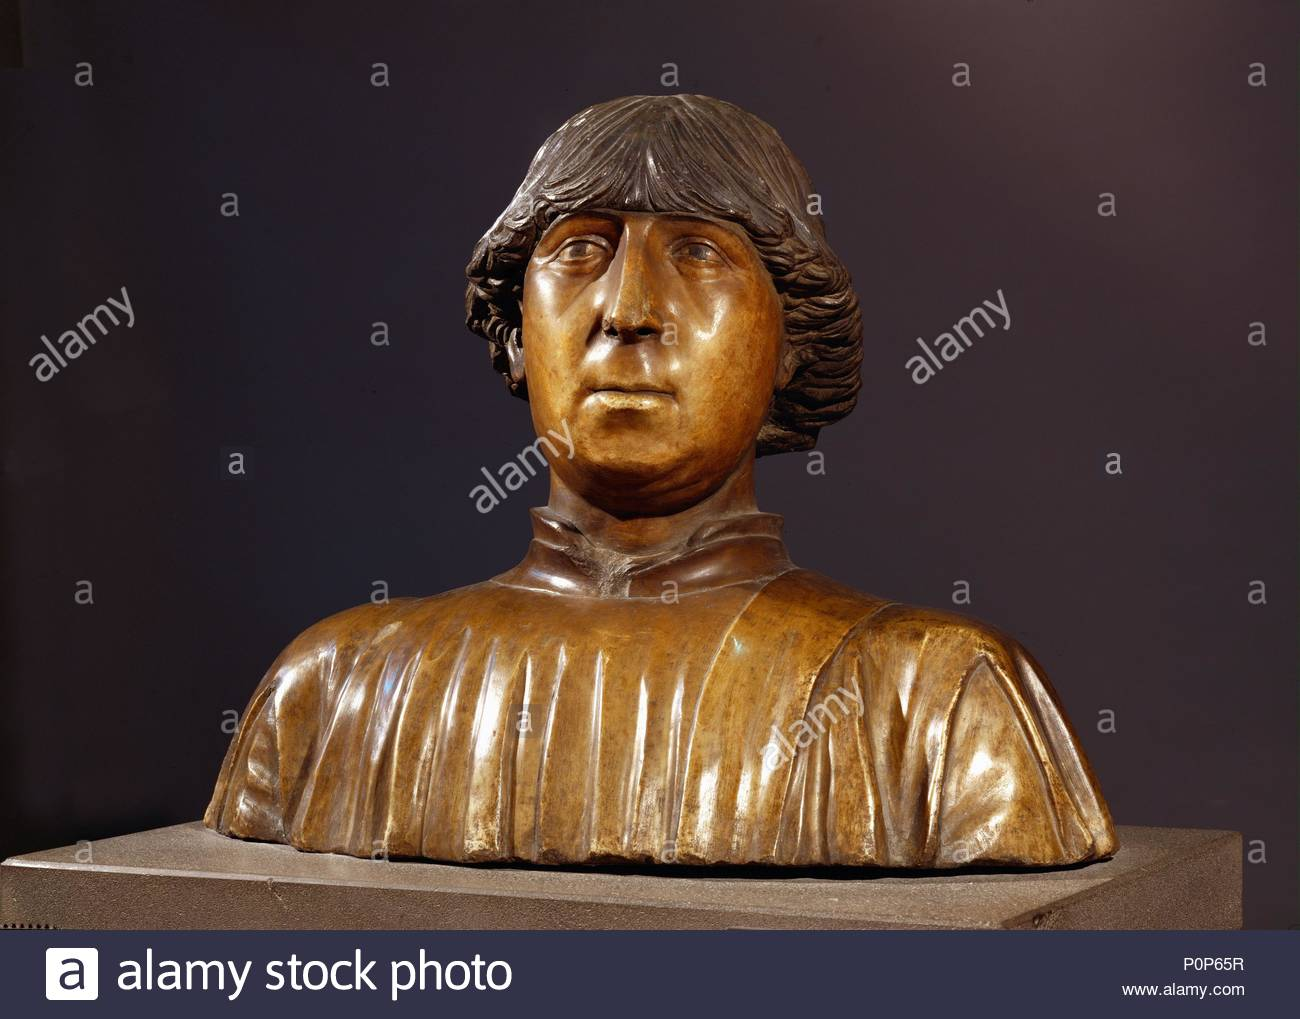 Ferdinand V Of Aragon Stock Photos and Images